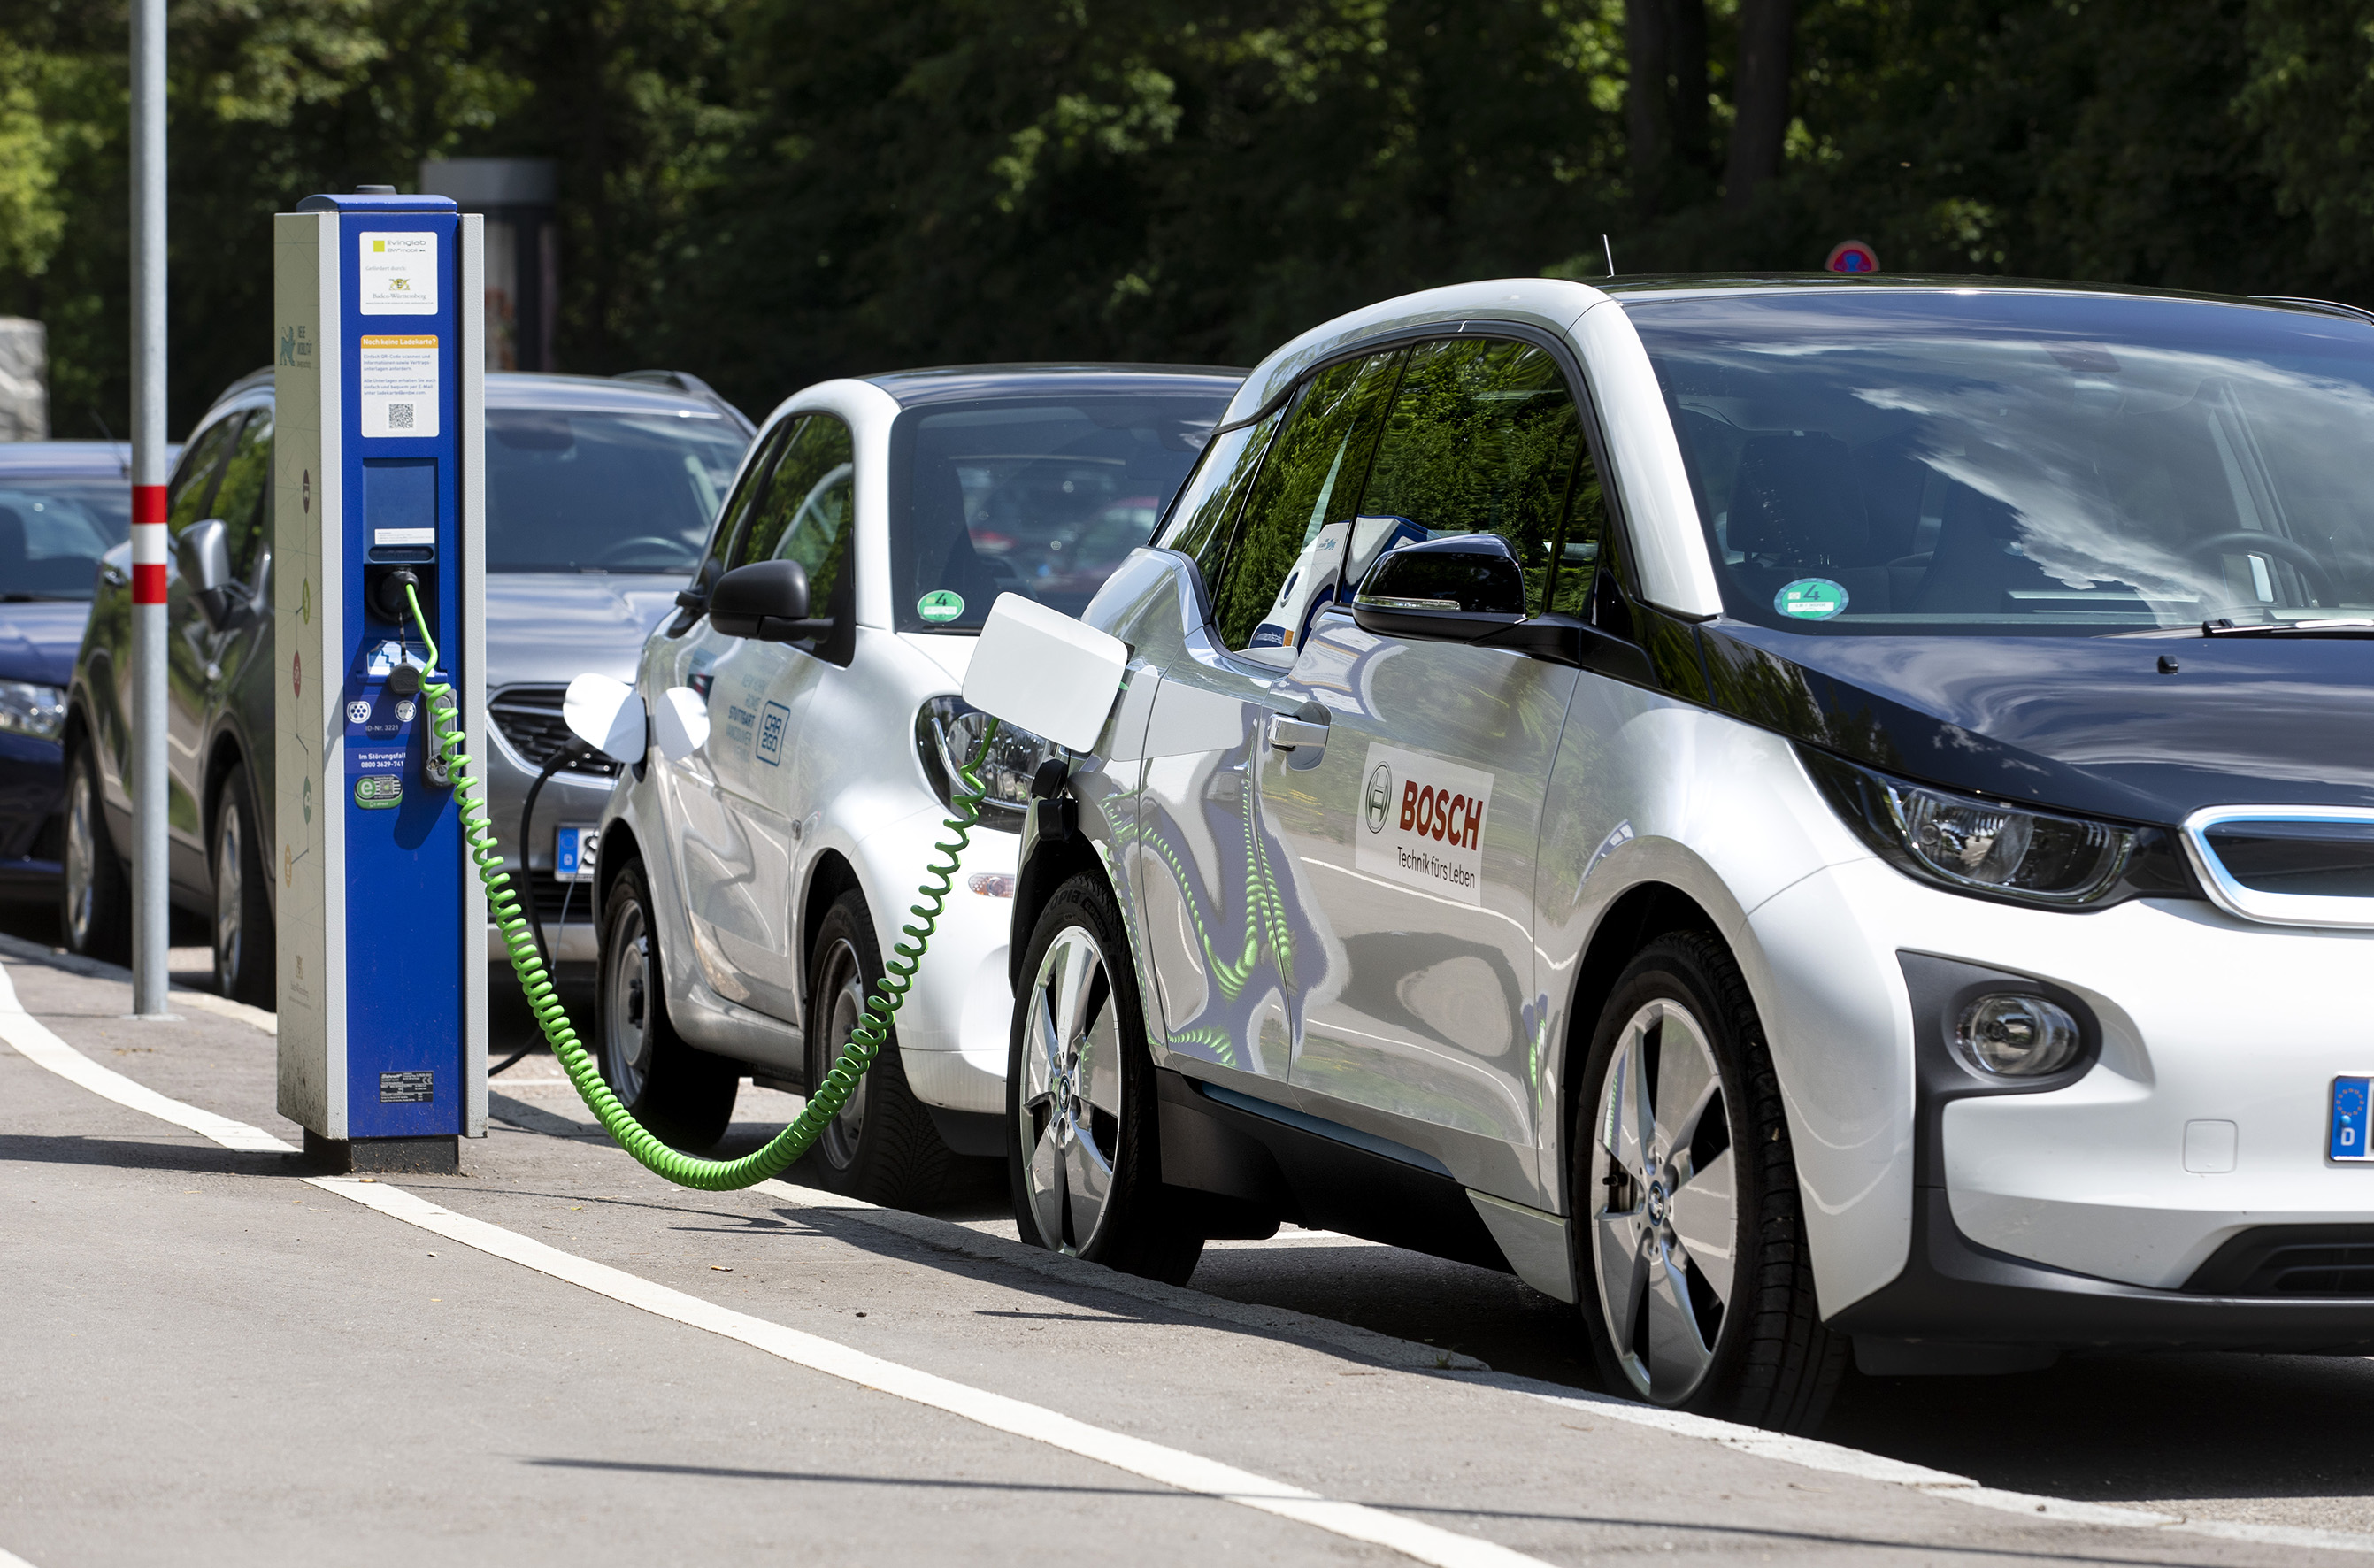 Services for electromobility